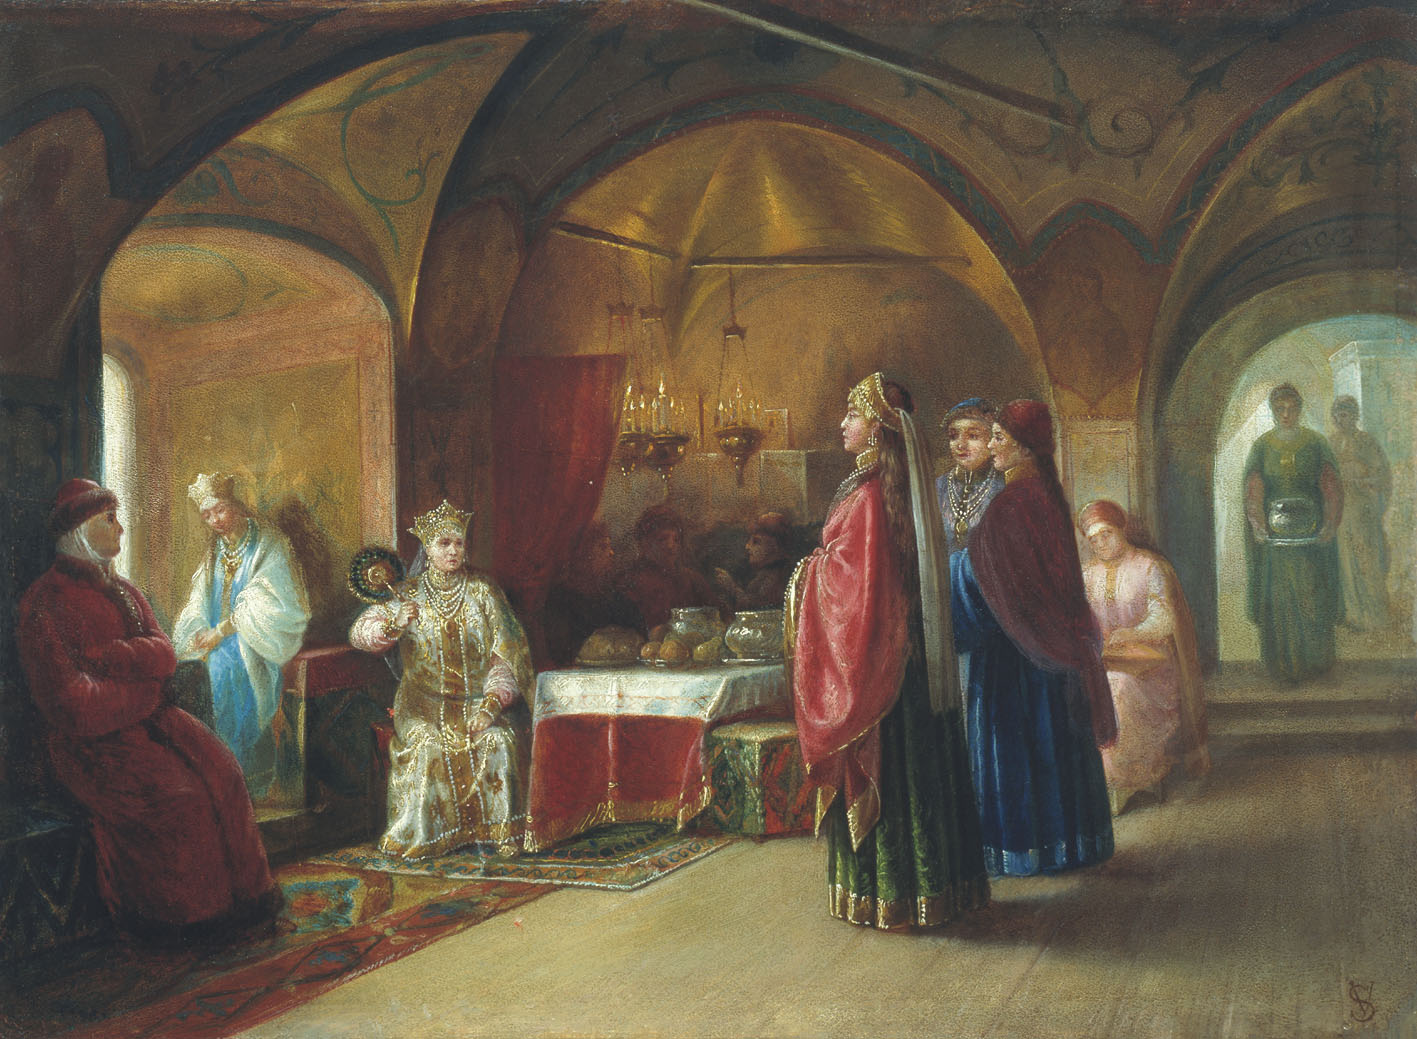 erem of the Tsarevnas, by M.P. Klodt, 1878. Painting depicting the terem in a medieval royal household. Photo in public domain.